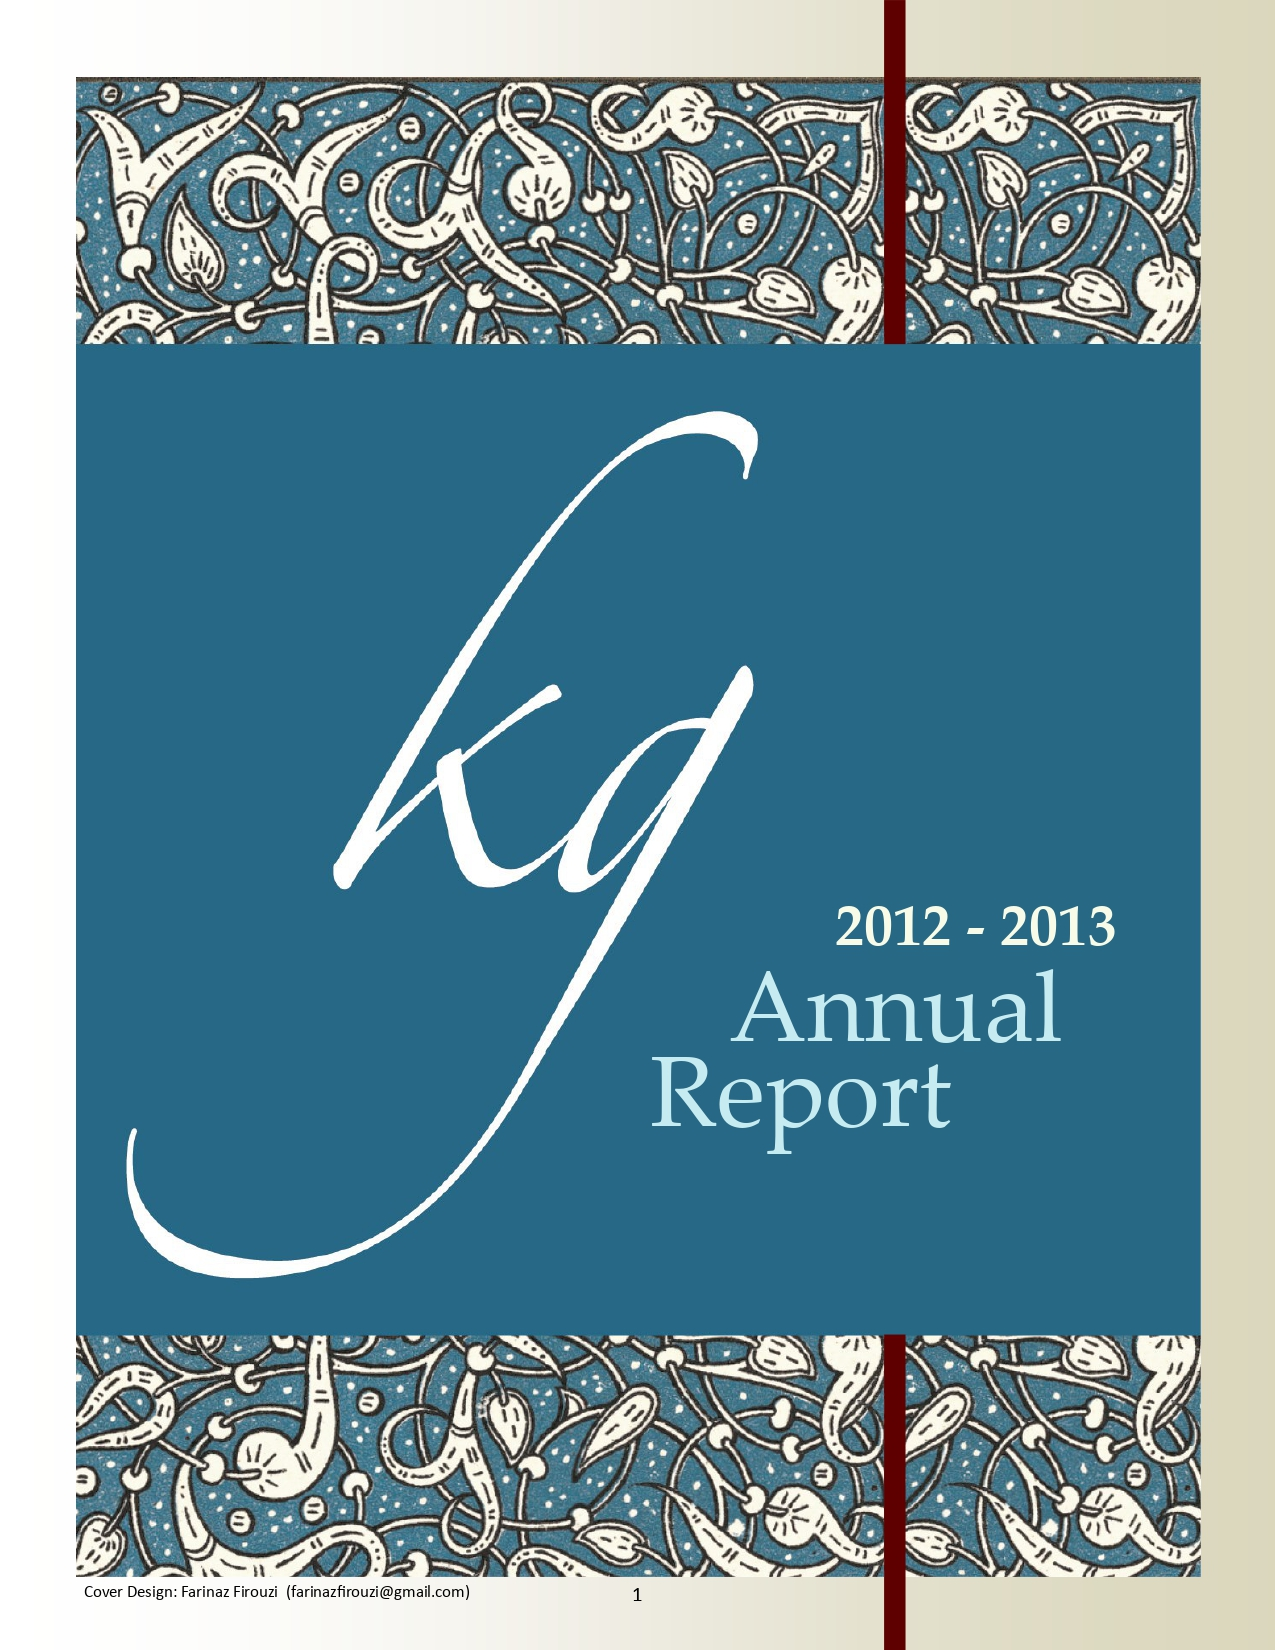 Annual Report on the Activities of The George and Lisa Zakhem Kahlil Gibran Chair for Values and Peace, The University of Maryland, 2012-2013.